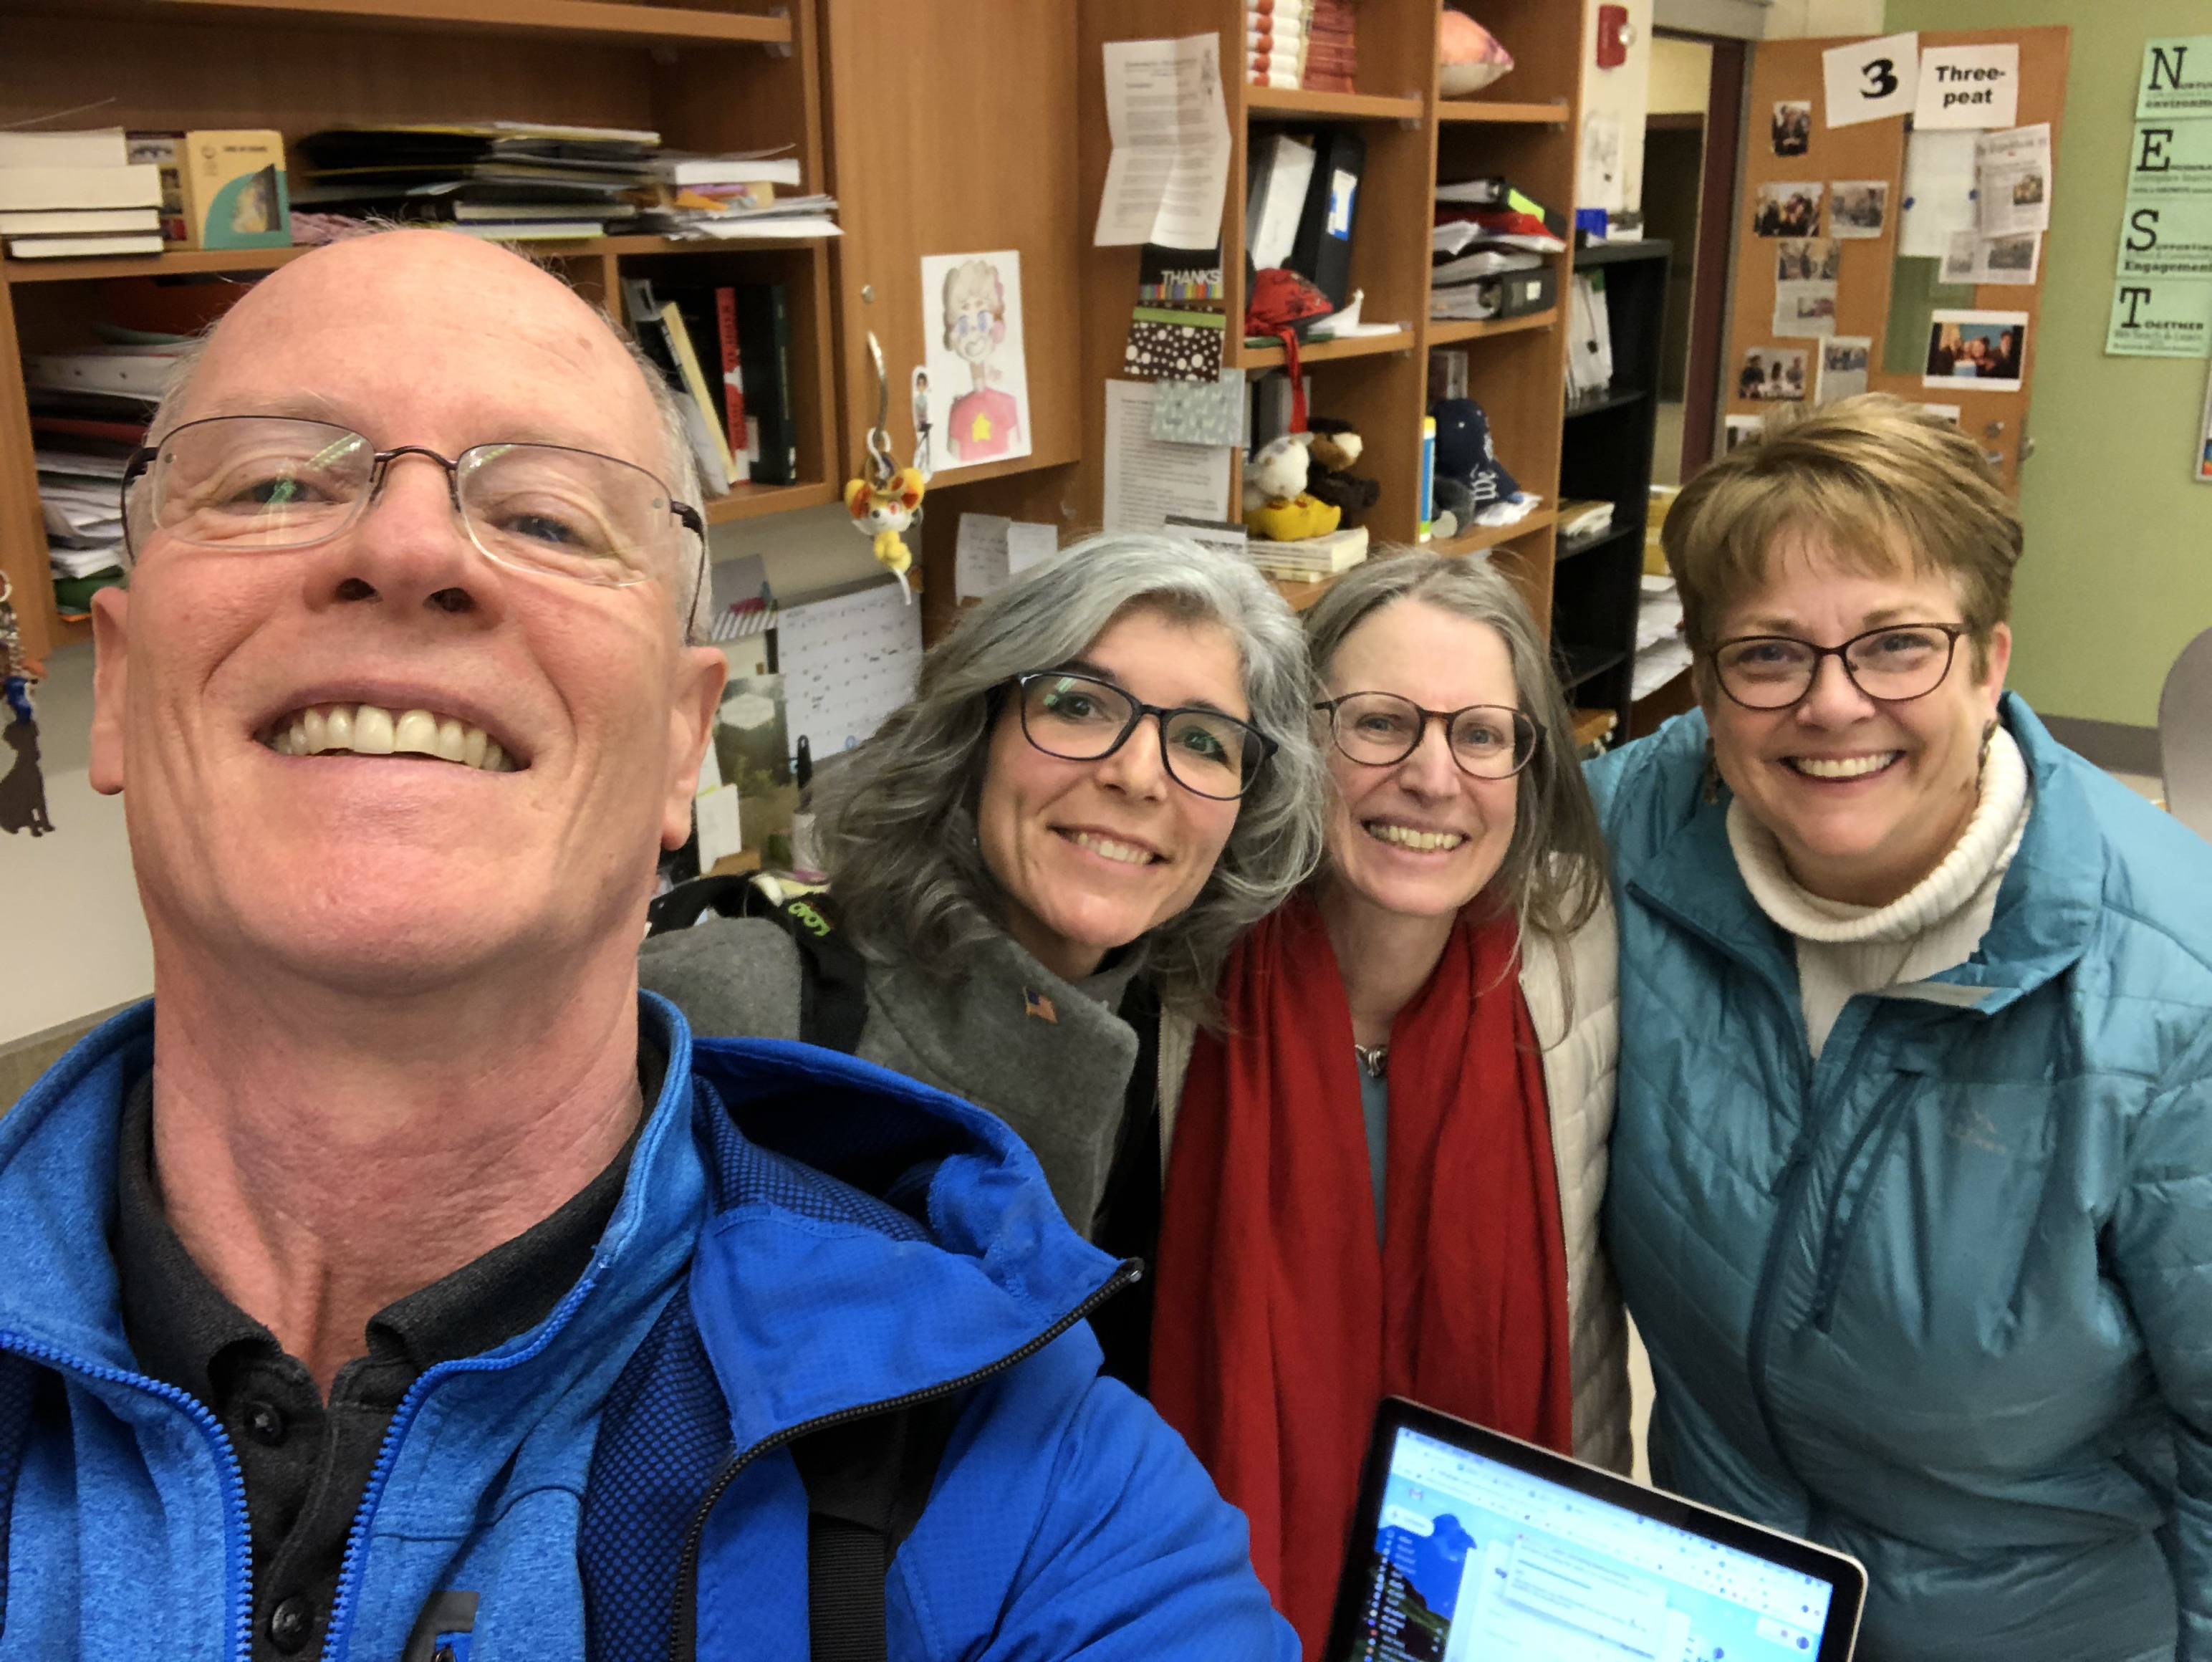 Emerging America director takes a selfie in a classroom with Brown, Risler, and Alison Noyes.